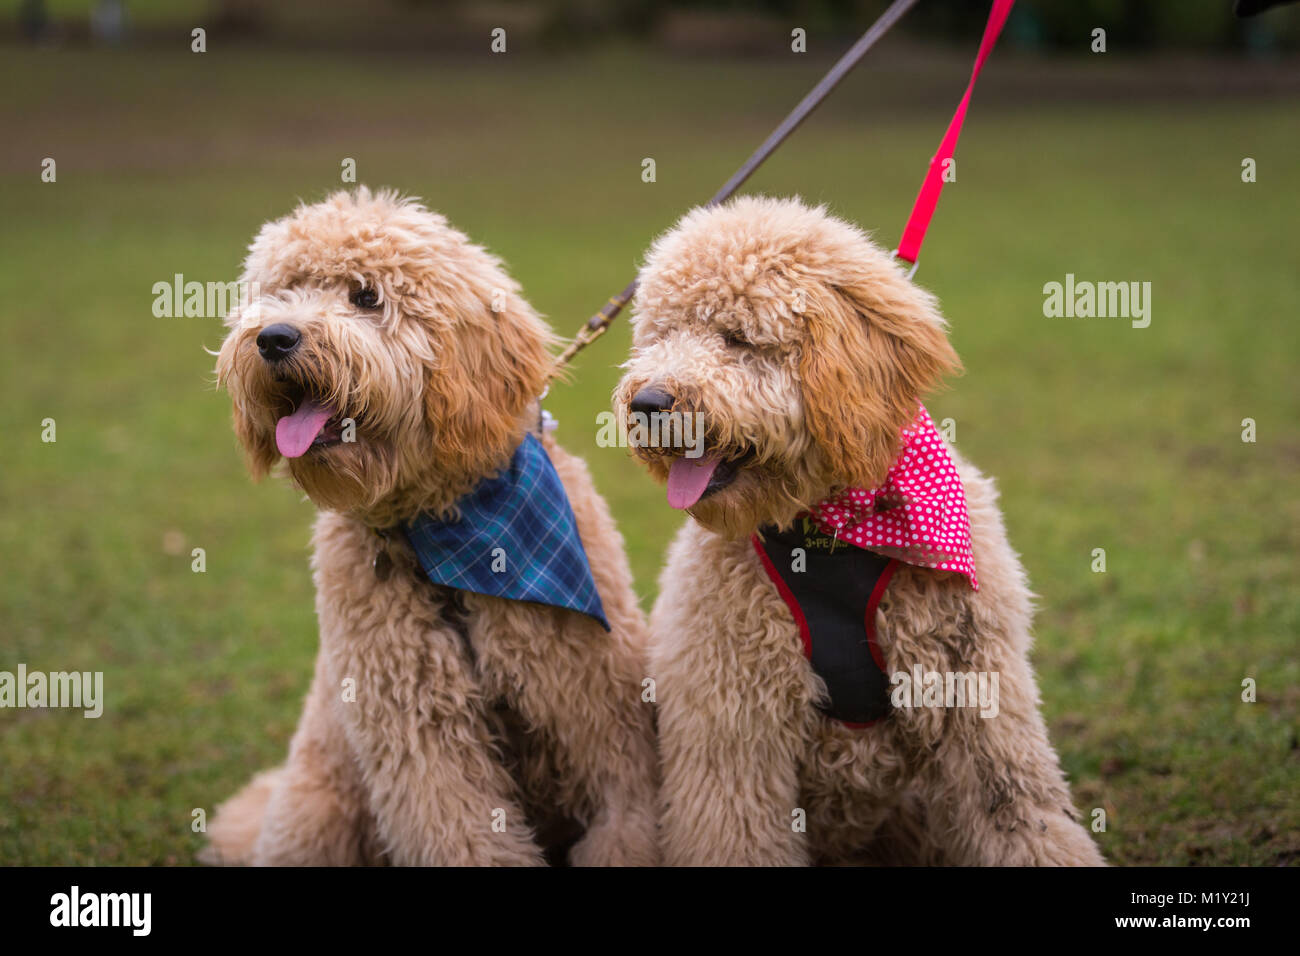 Goldendoodle Dogs Stock Photos & Goldendoodle Dogs Stock